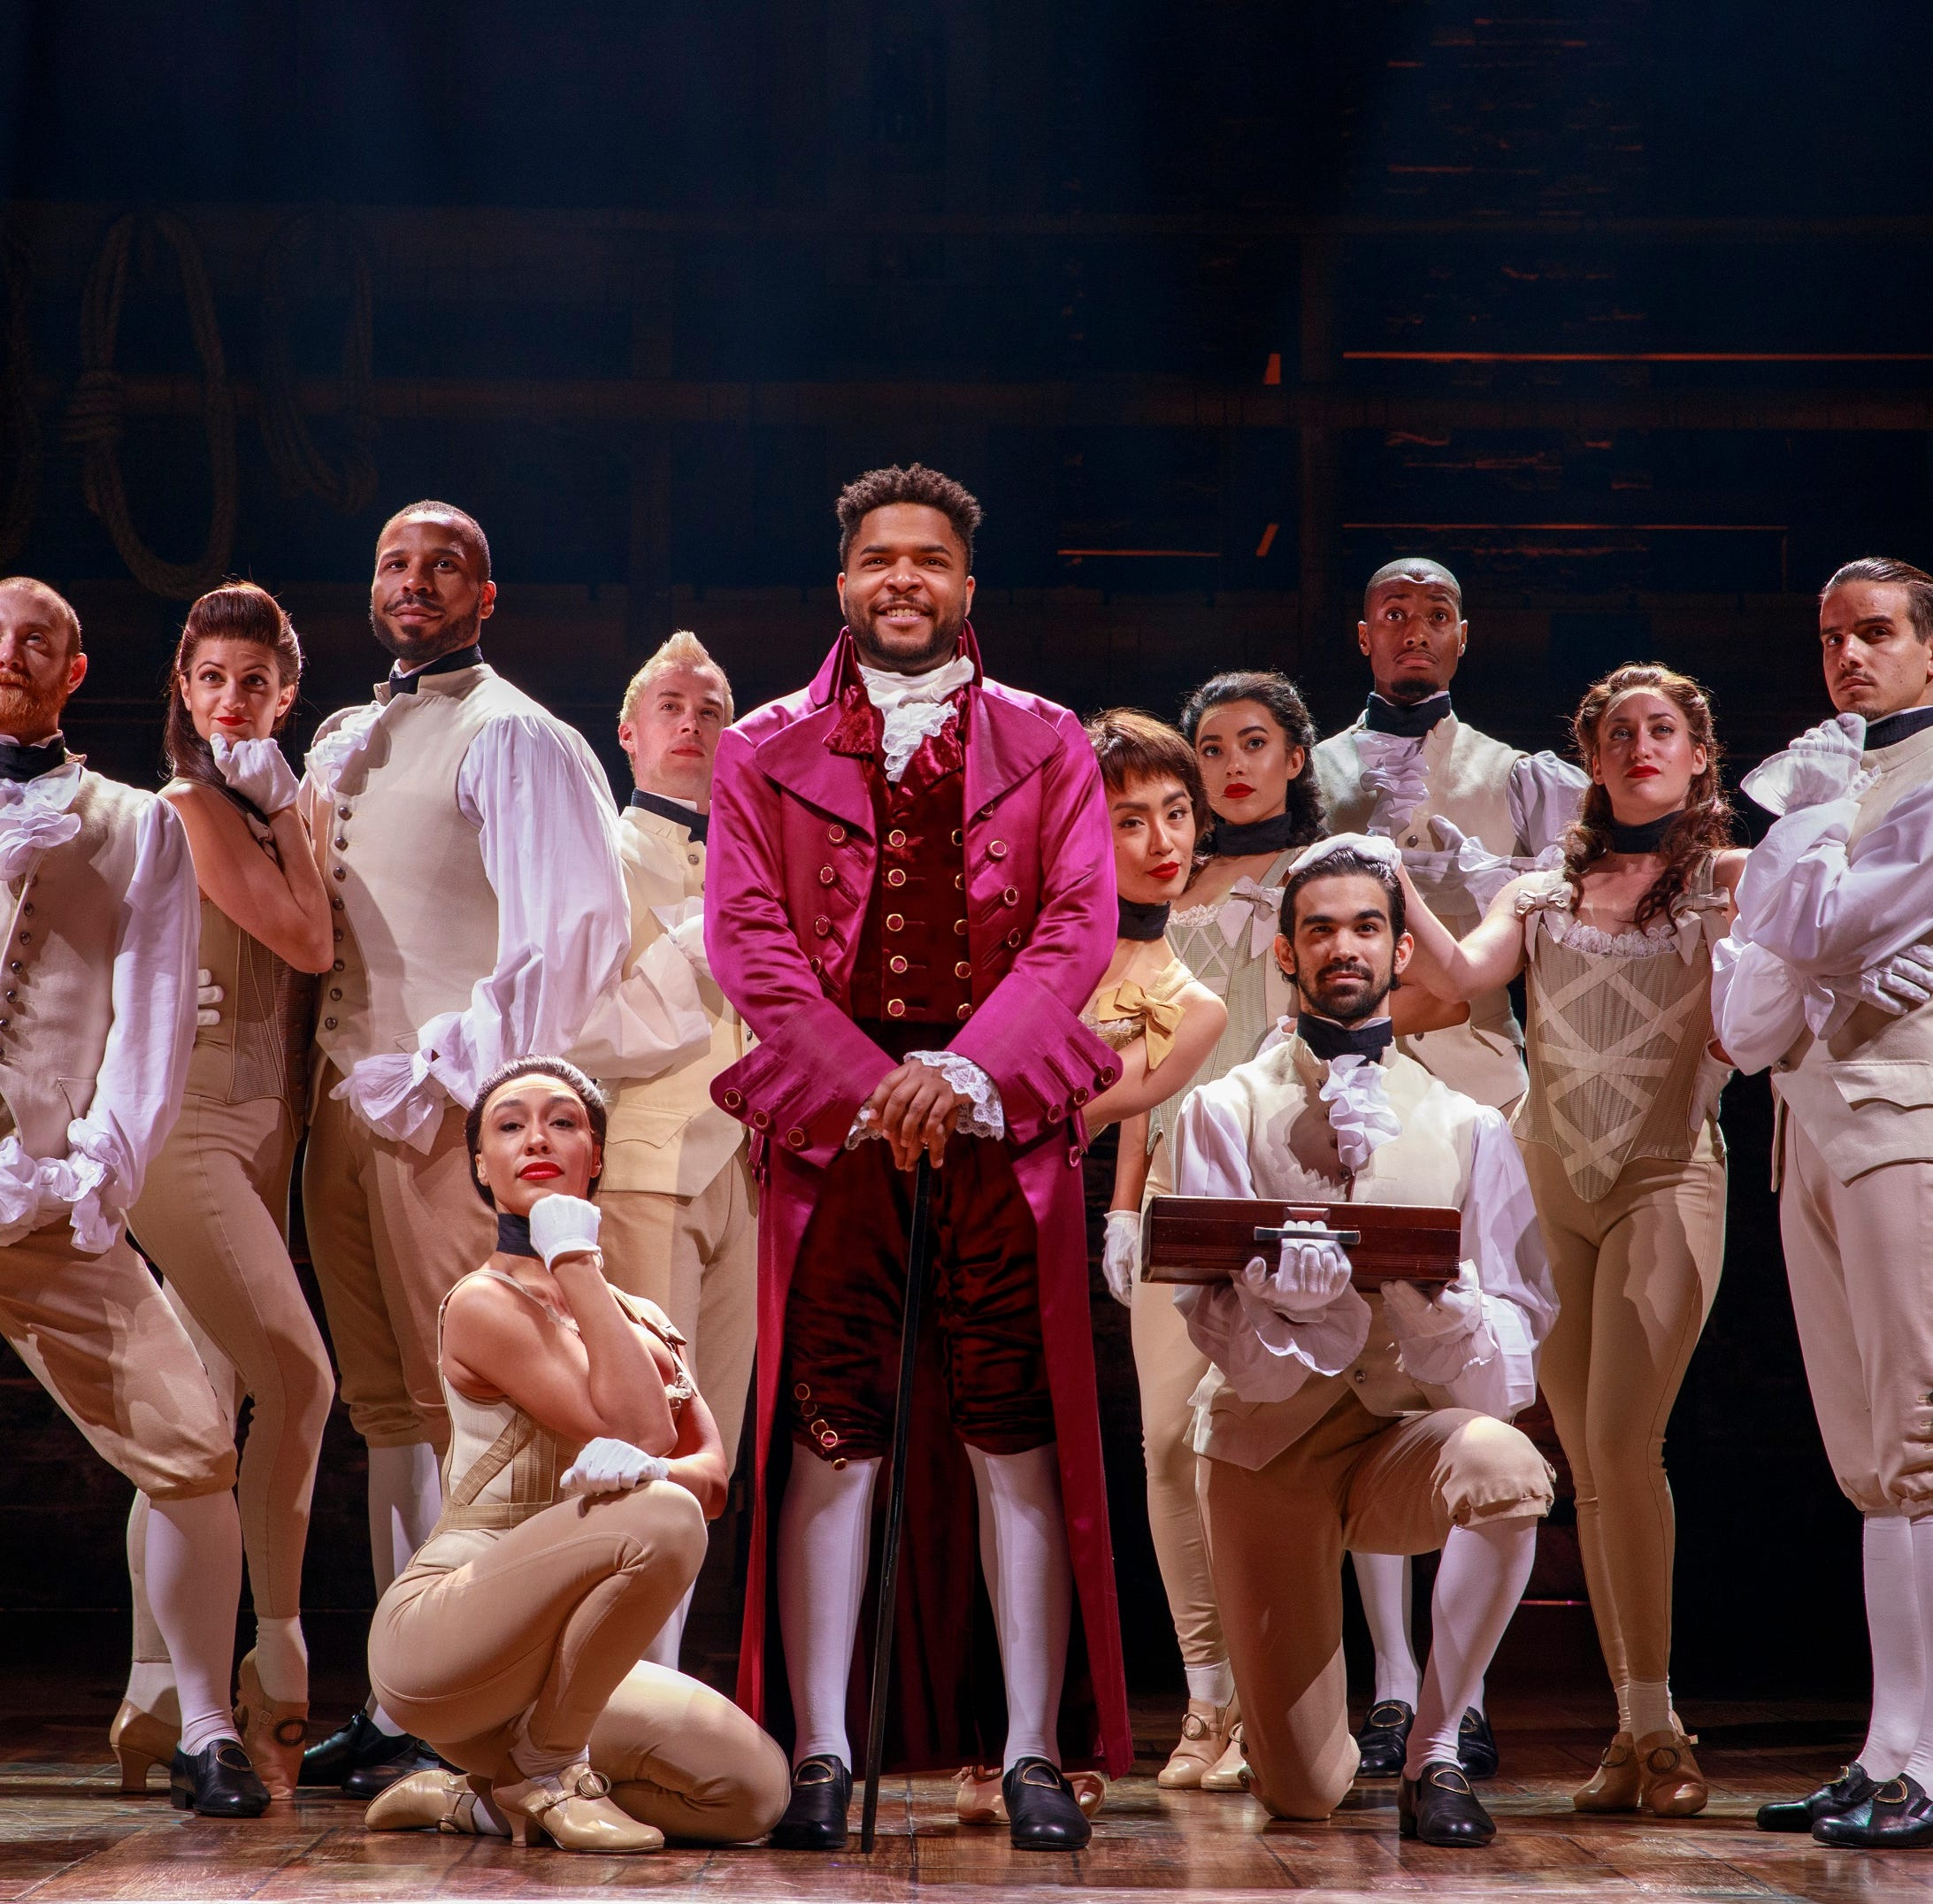 Review: 'Hamilton' is everything the hype suggested it would be